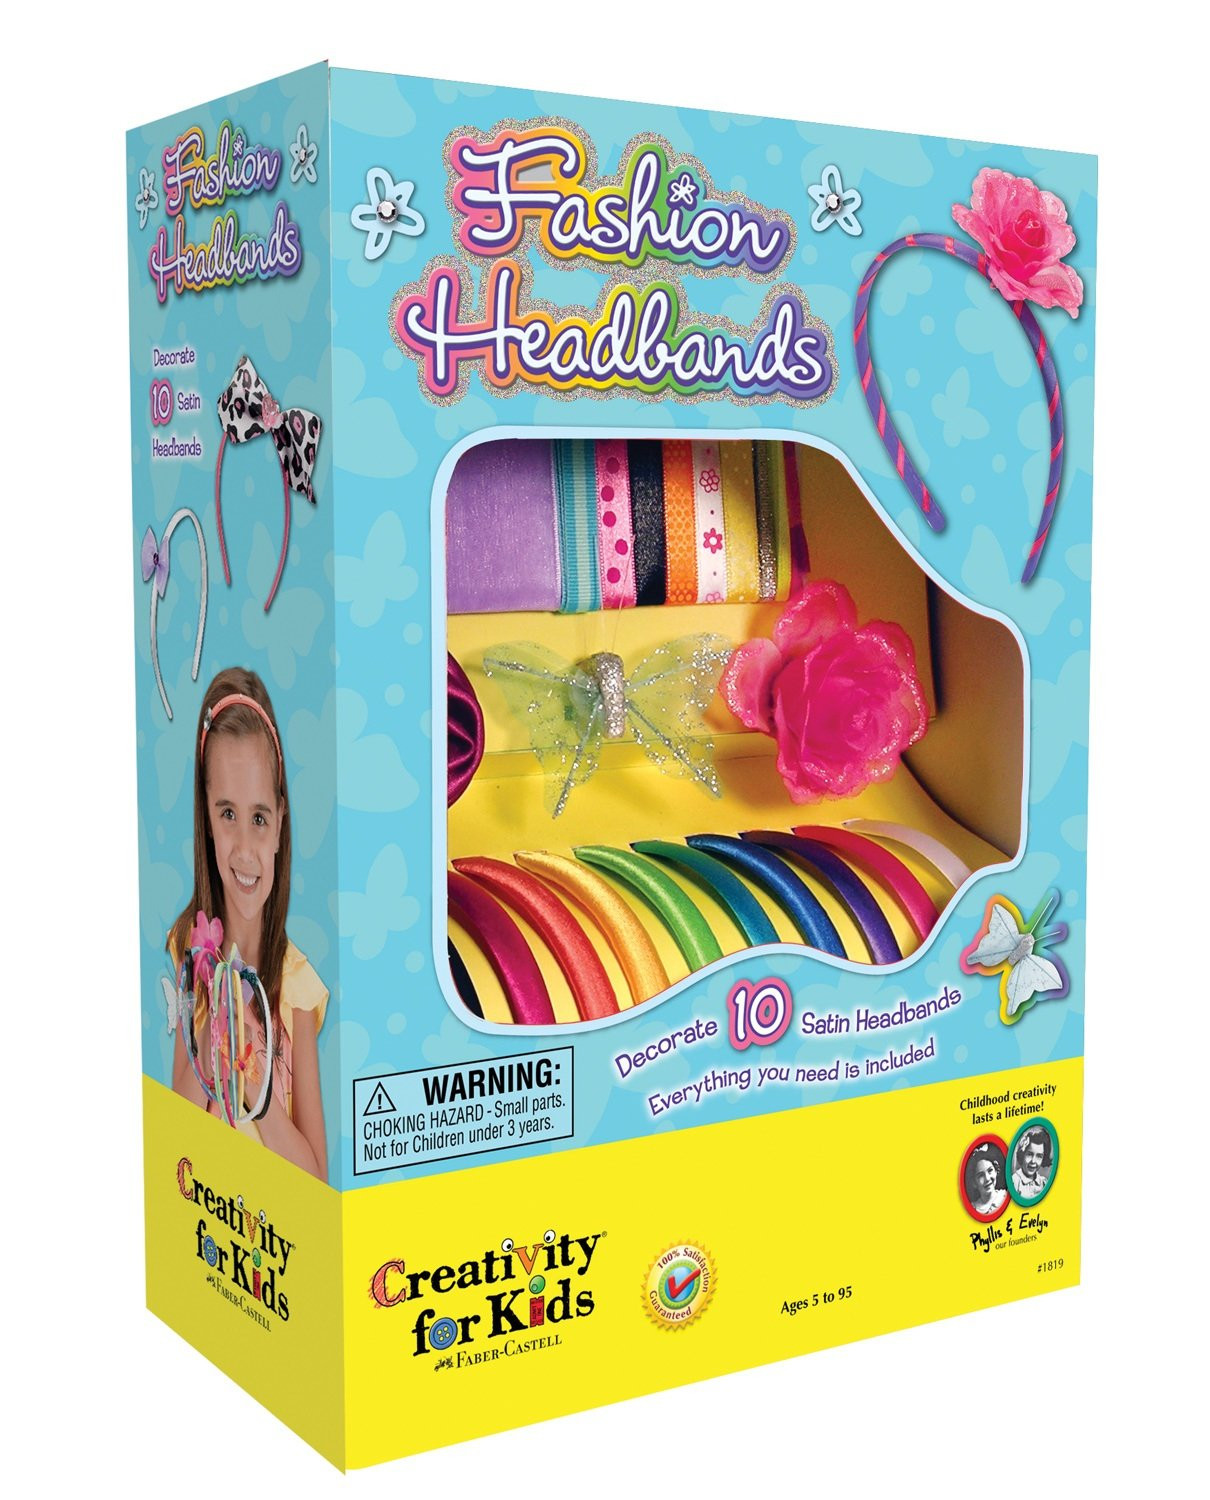 Cool Toys Ages 10 And Up : Best gifts for year old girls in itsy bitsy fun